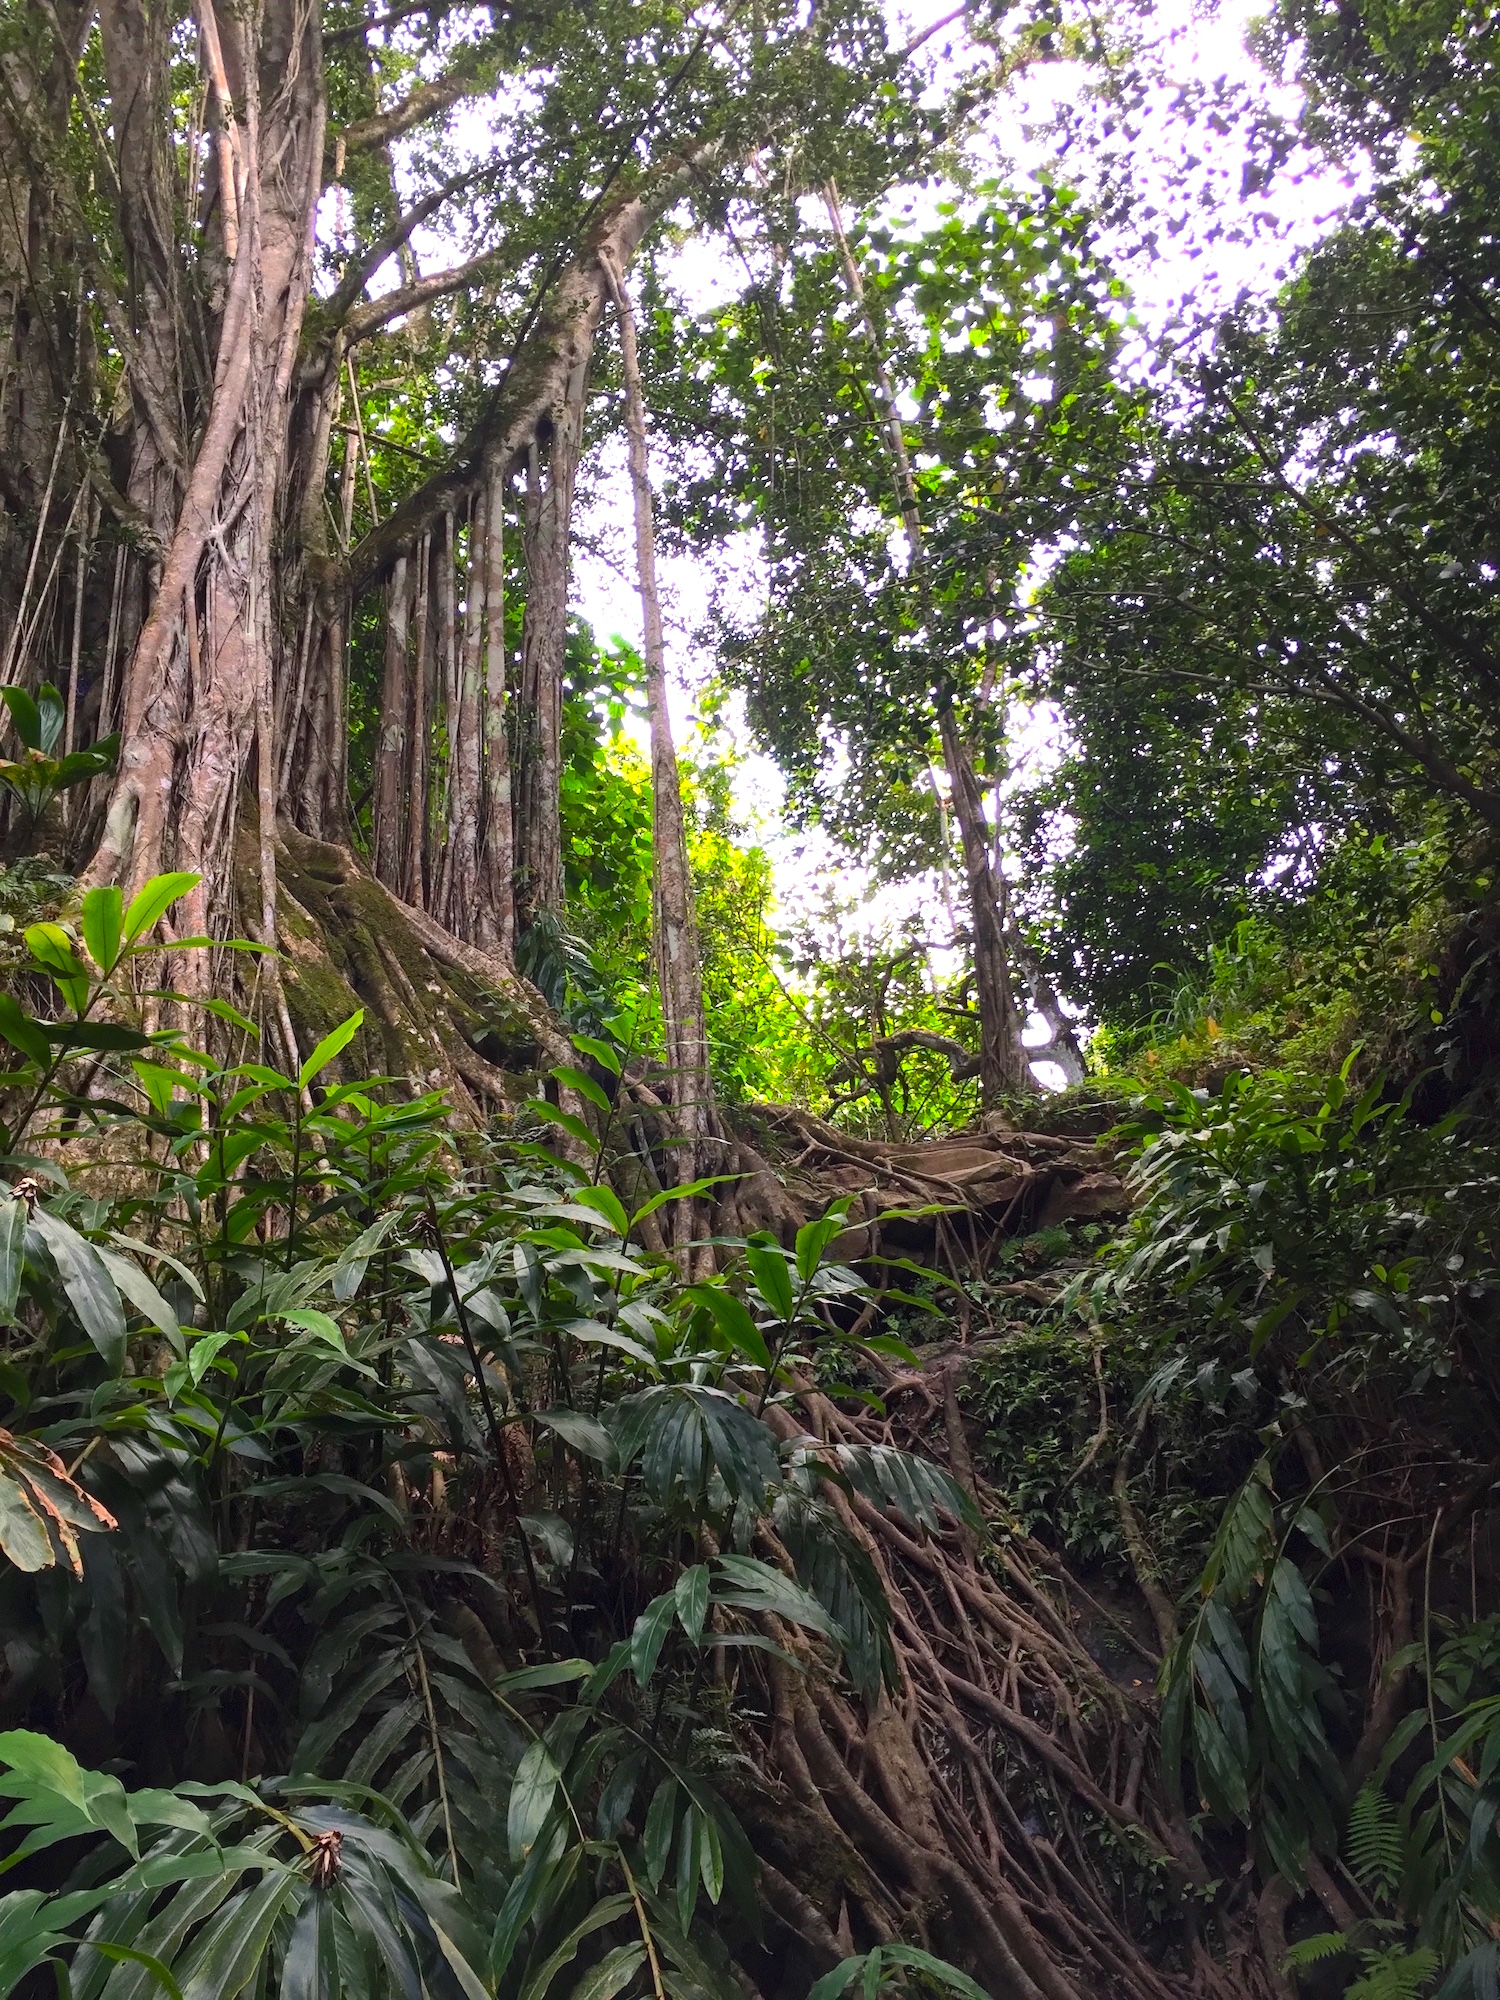 private-guided-hikes-west-maui-hawaii.jpg